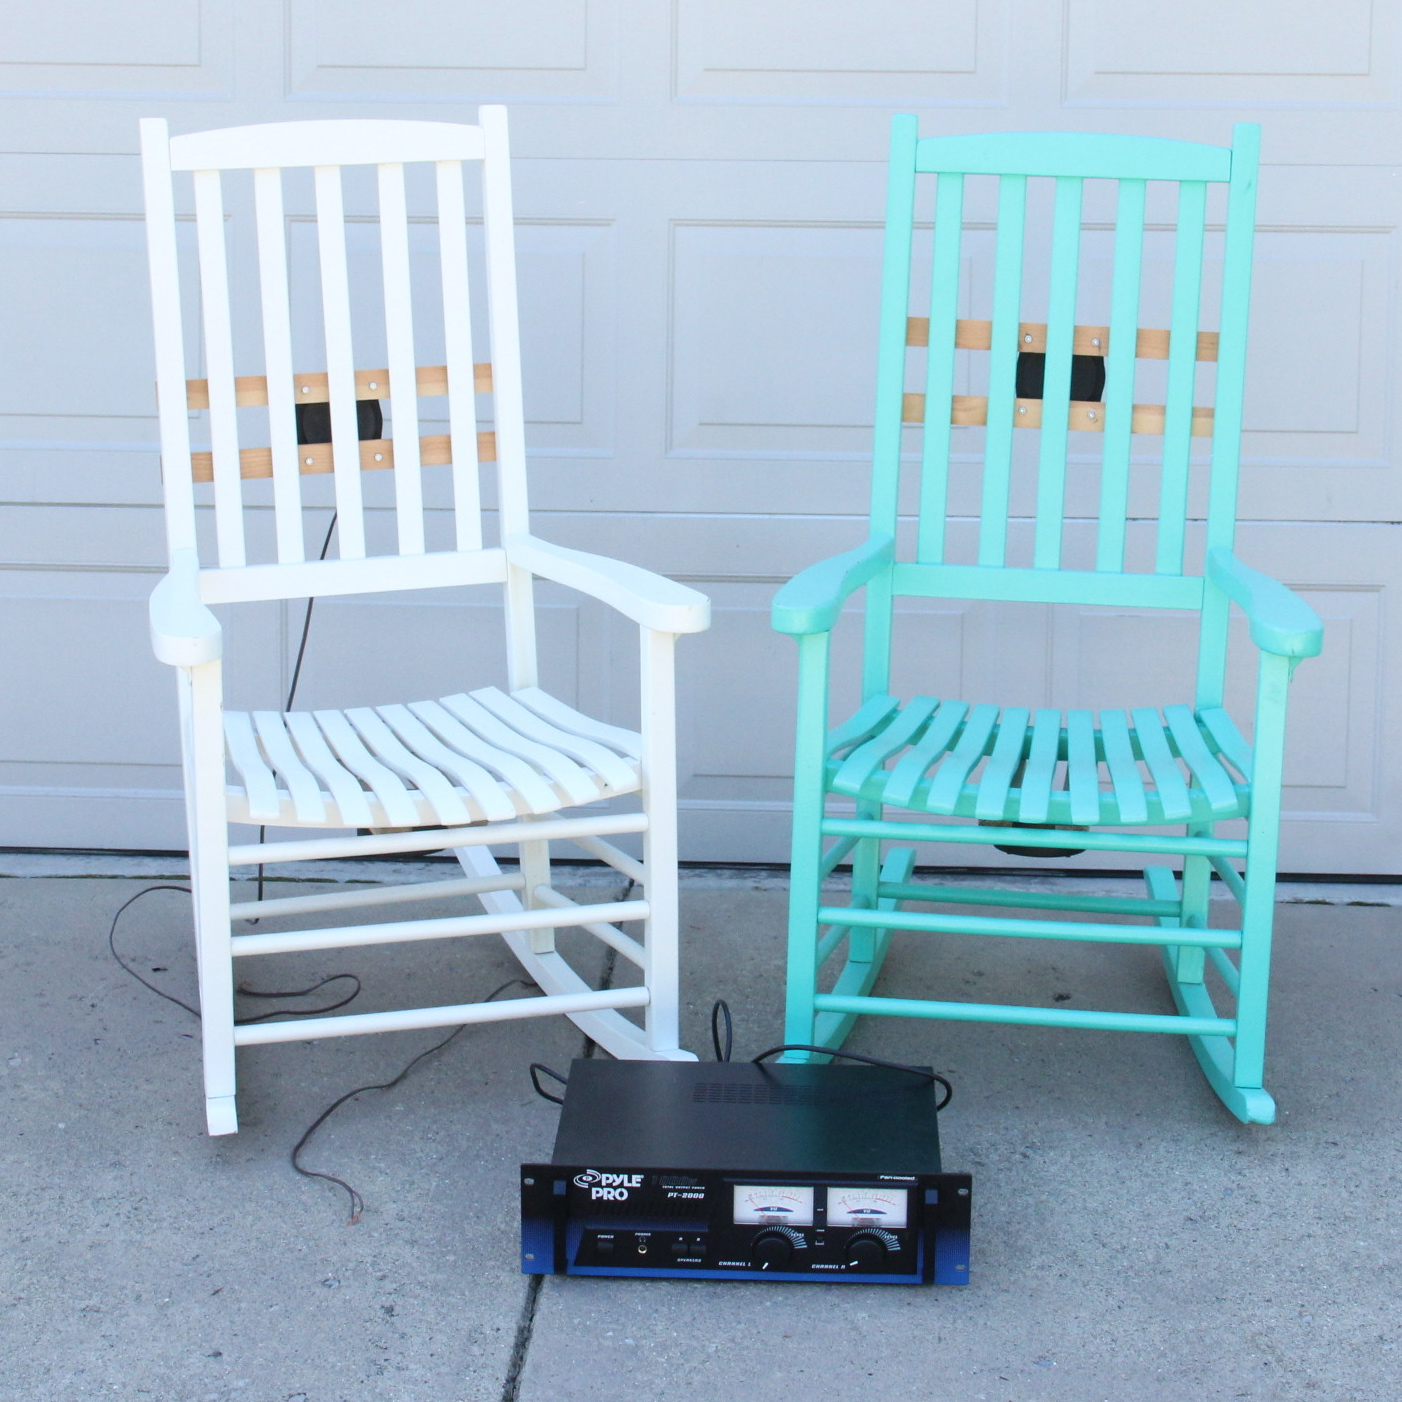 therapeutic rocking chairs. rocking chair s therapeutic tranducers chairs u